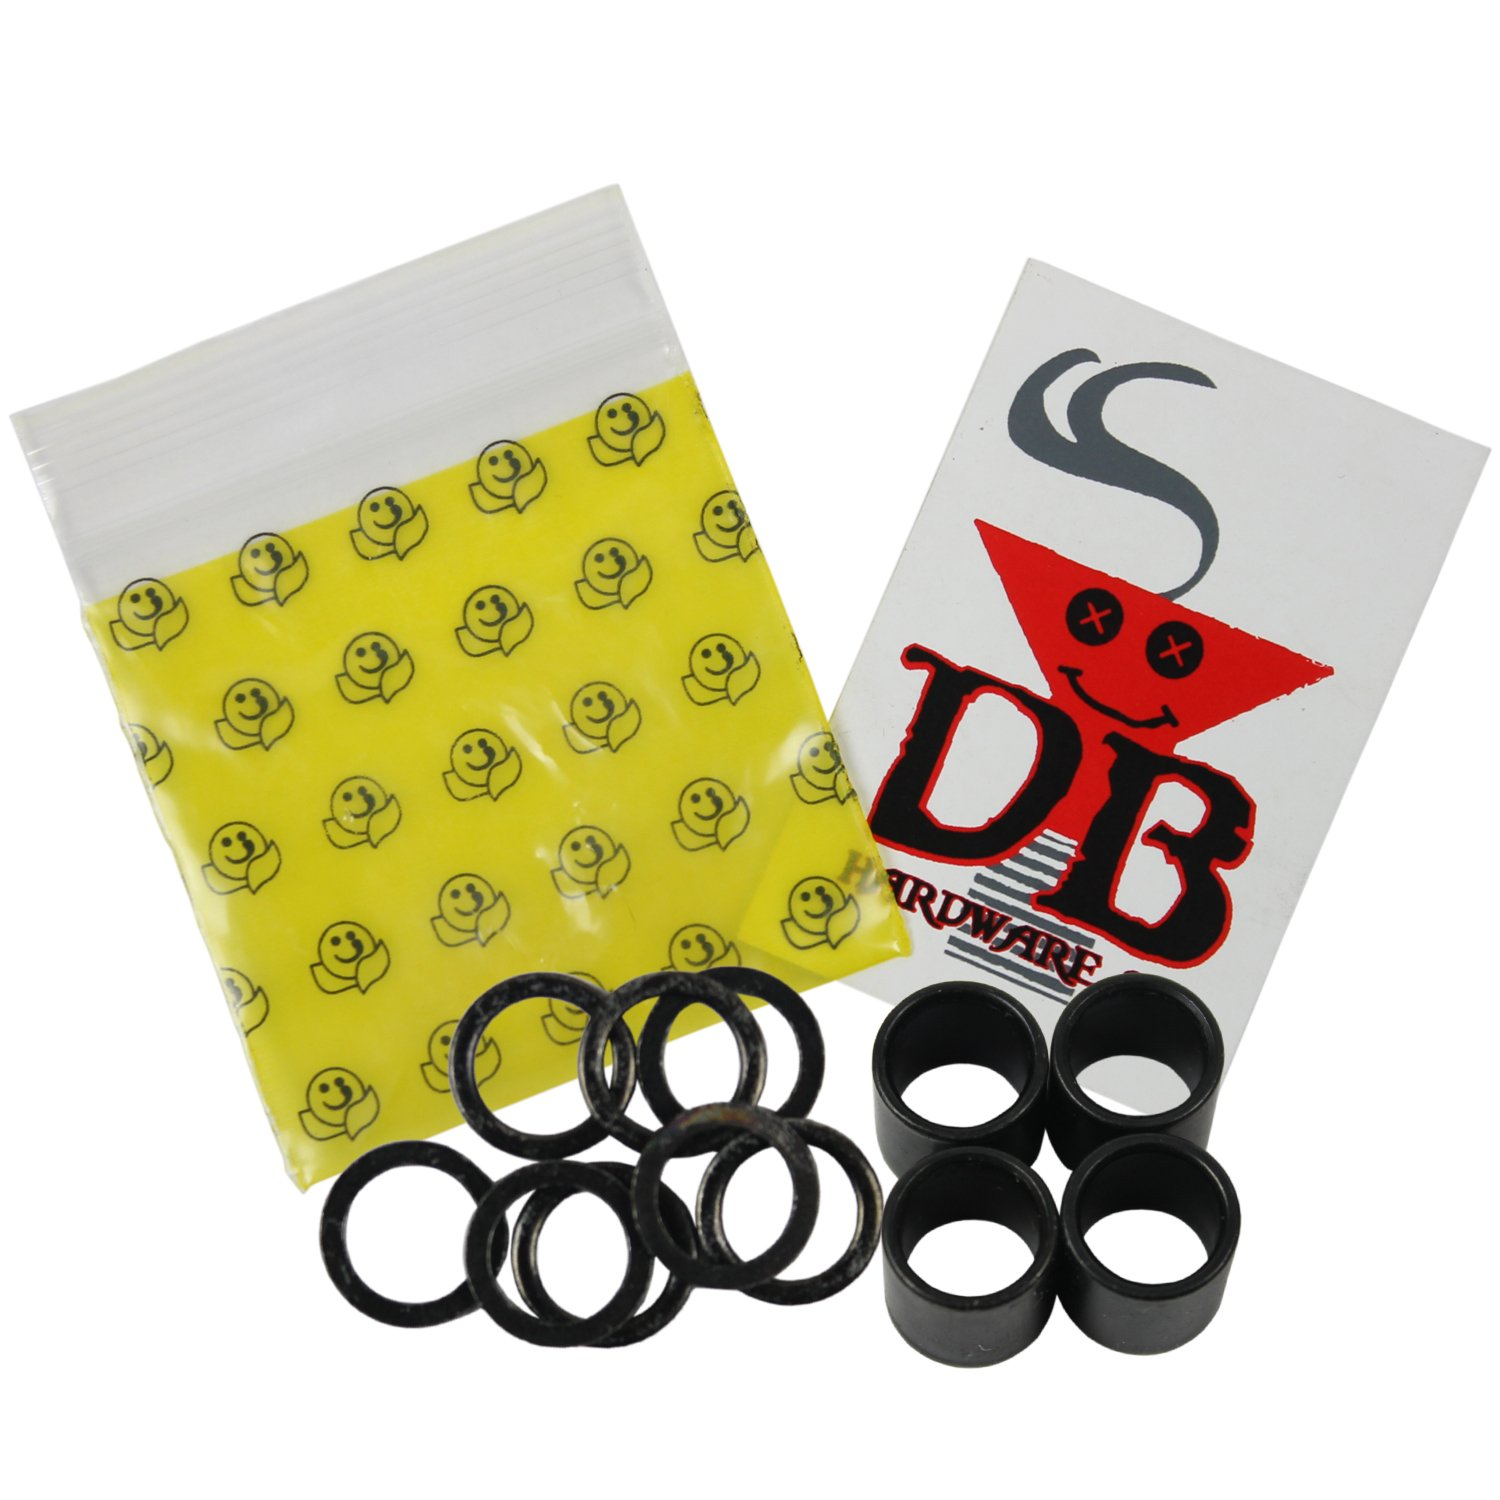 Dime Bag Hardware Skateboard Speed Kit Bearing Spacers and Speed Washers Upgrades Bearings, Trucks and Wheels DECK